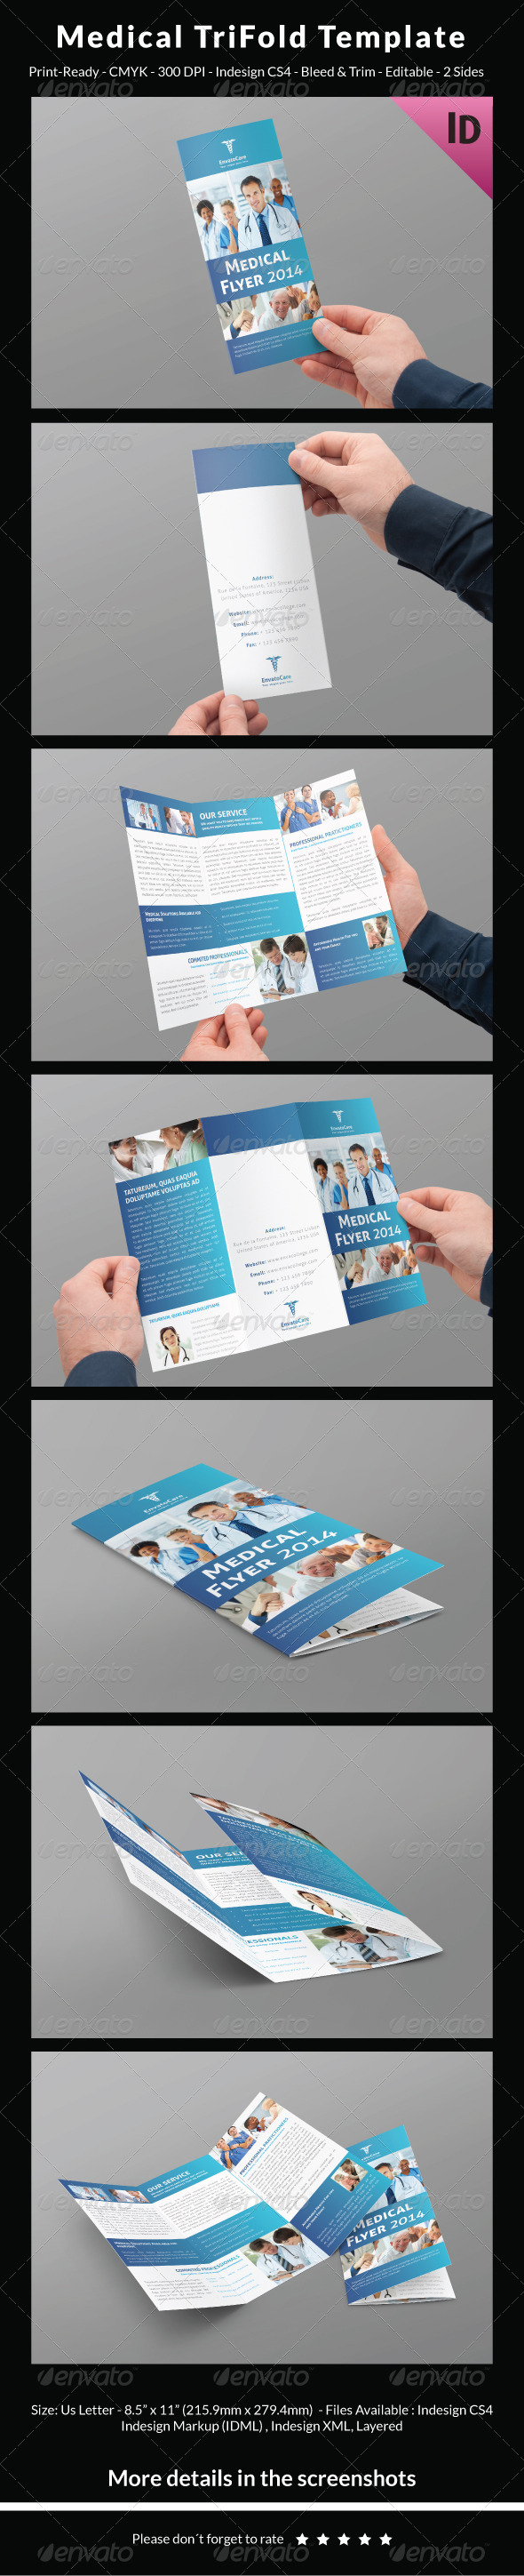 GraphicRiver Medical Trifold Template 8241344